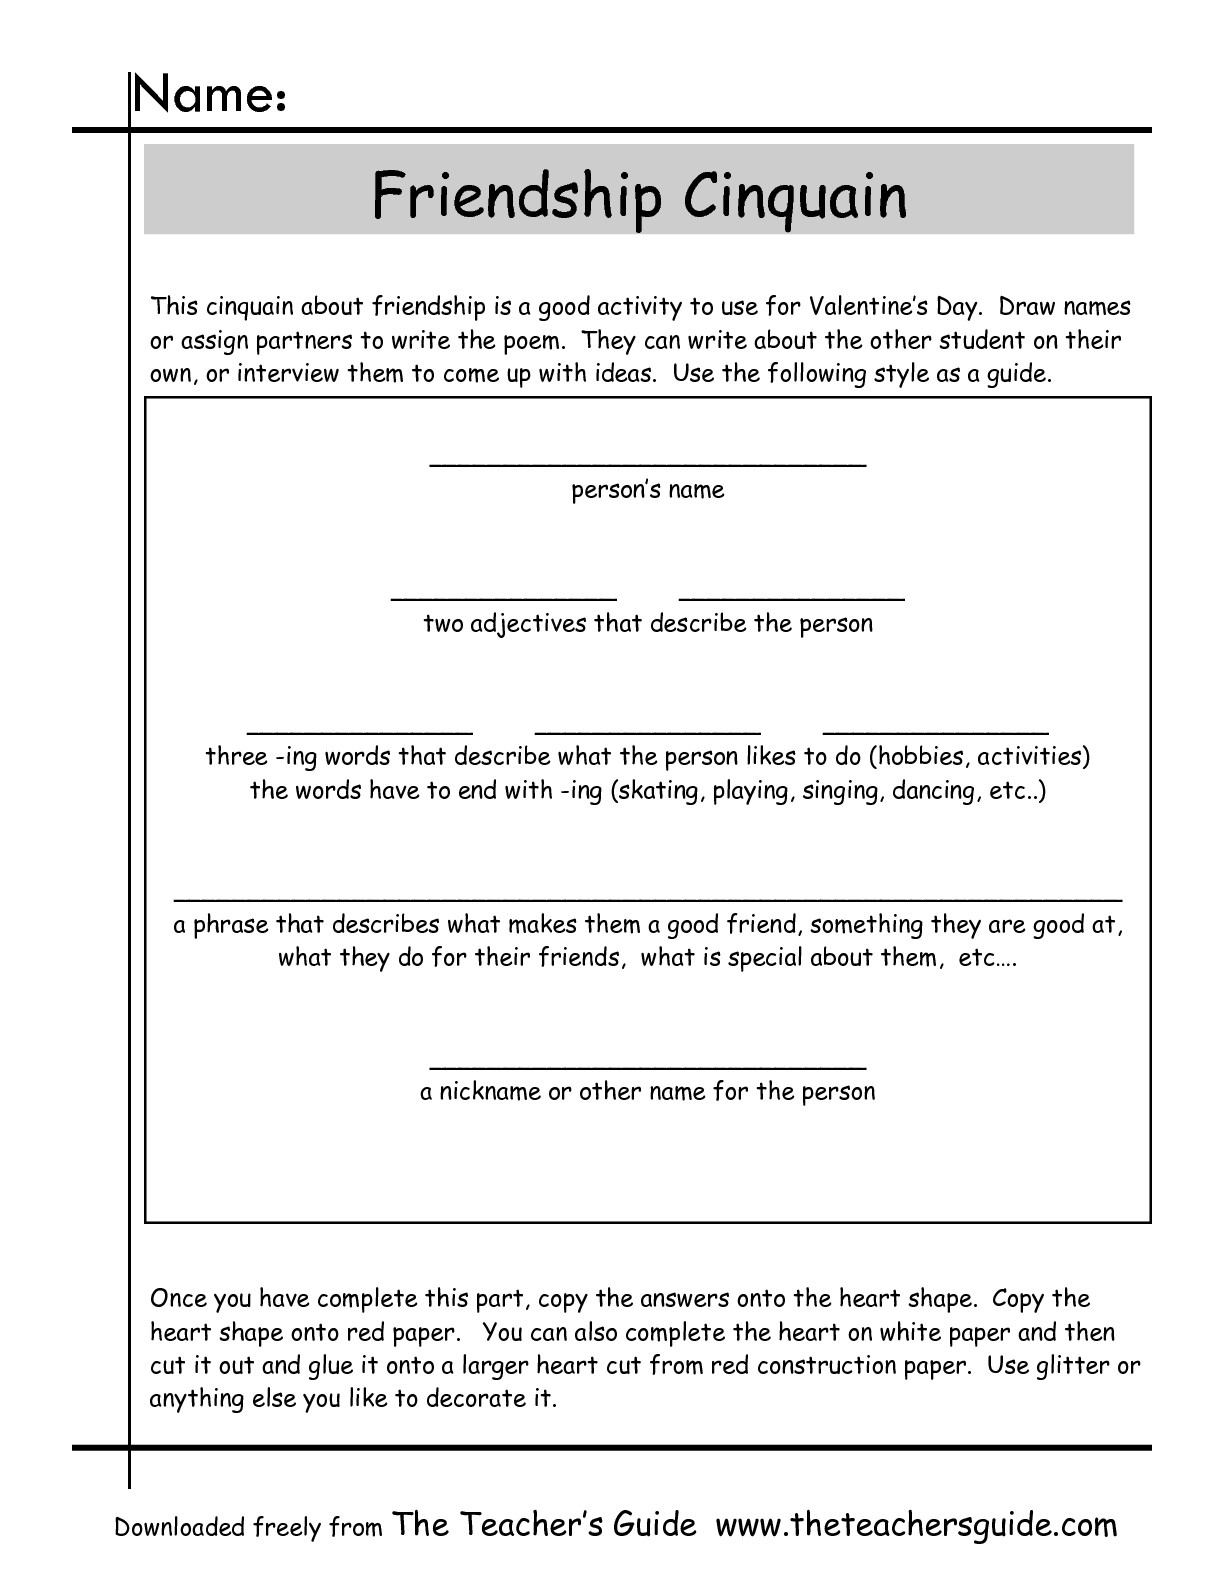 Cinquain Poems Worksheets From The Teacher's Guide | Poetry Worksheets Printable